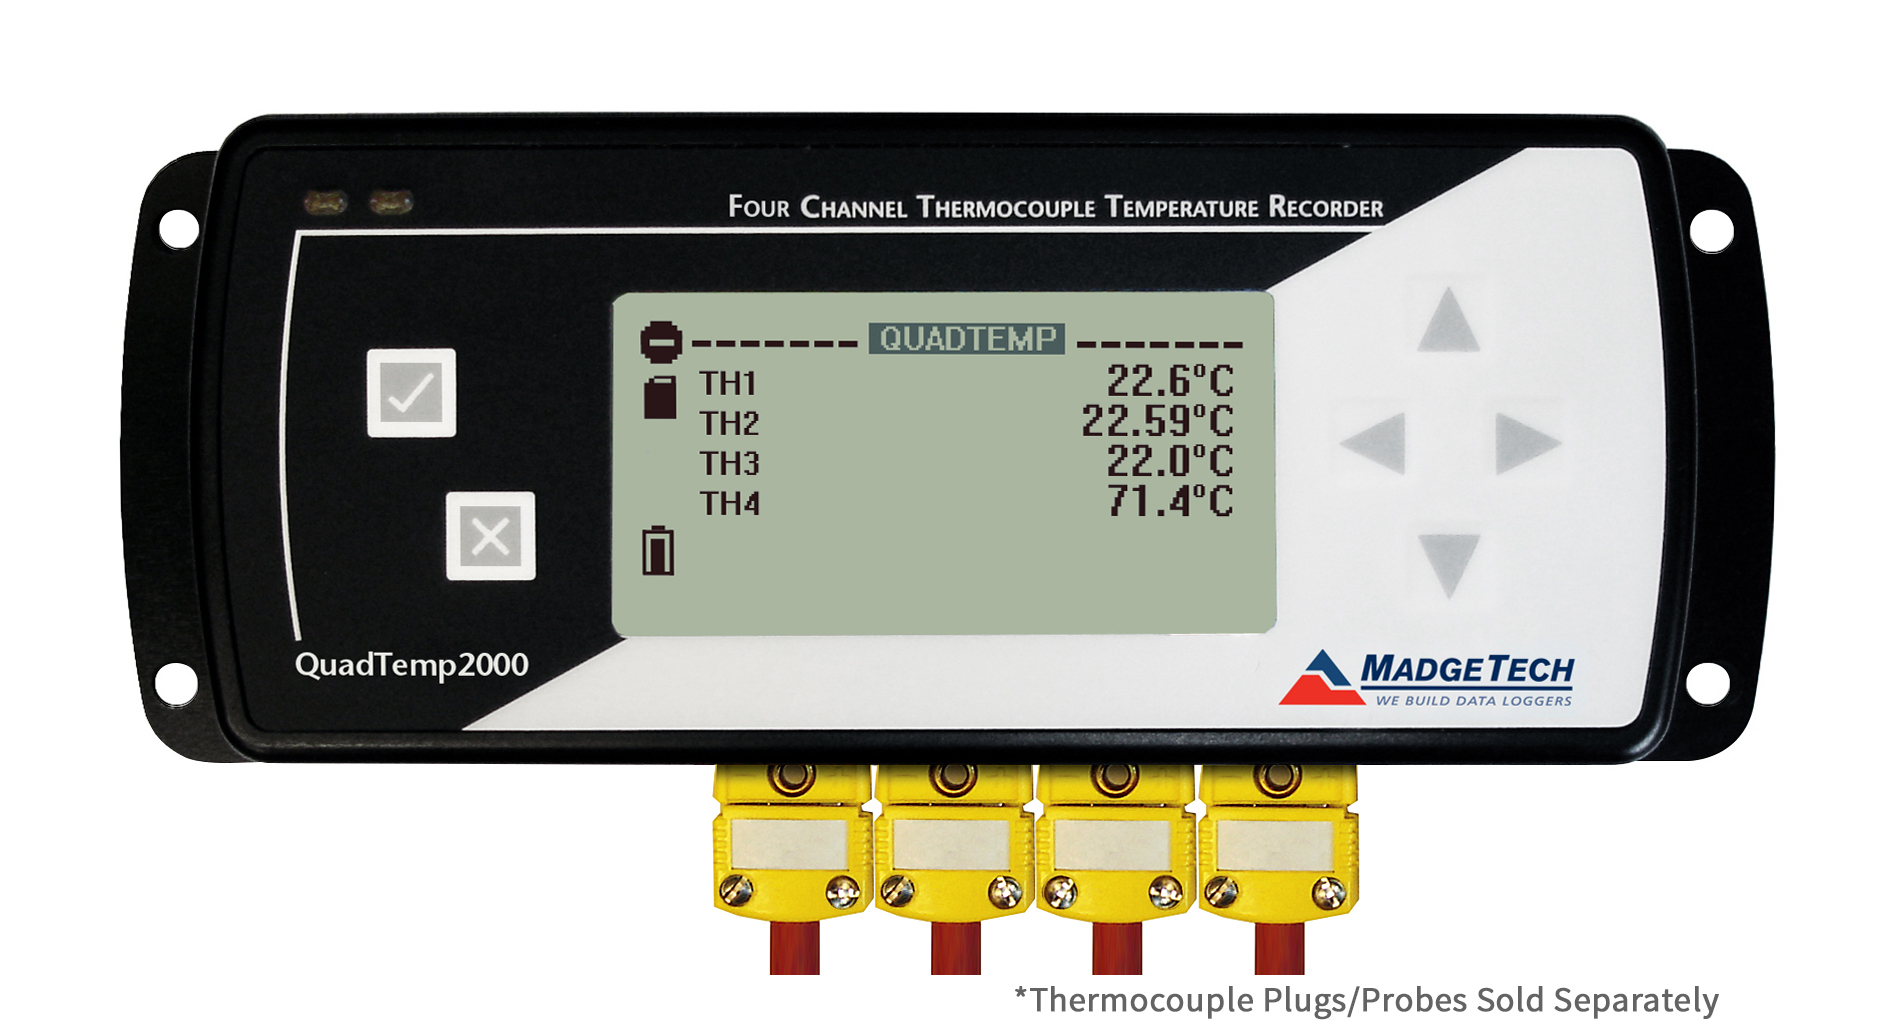 QuadTemp2000 4 channel data logger